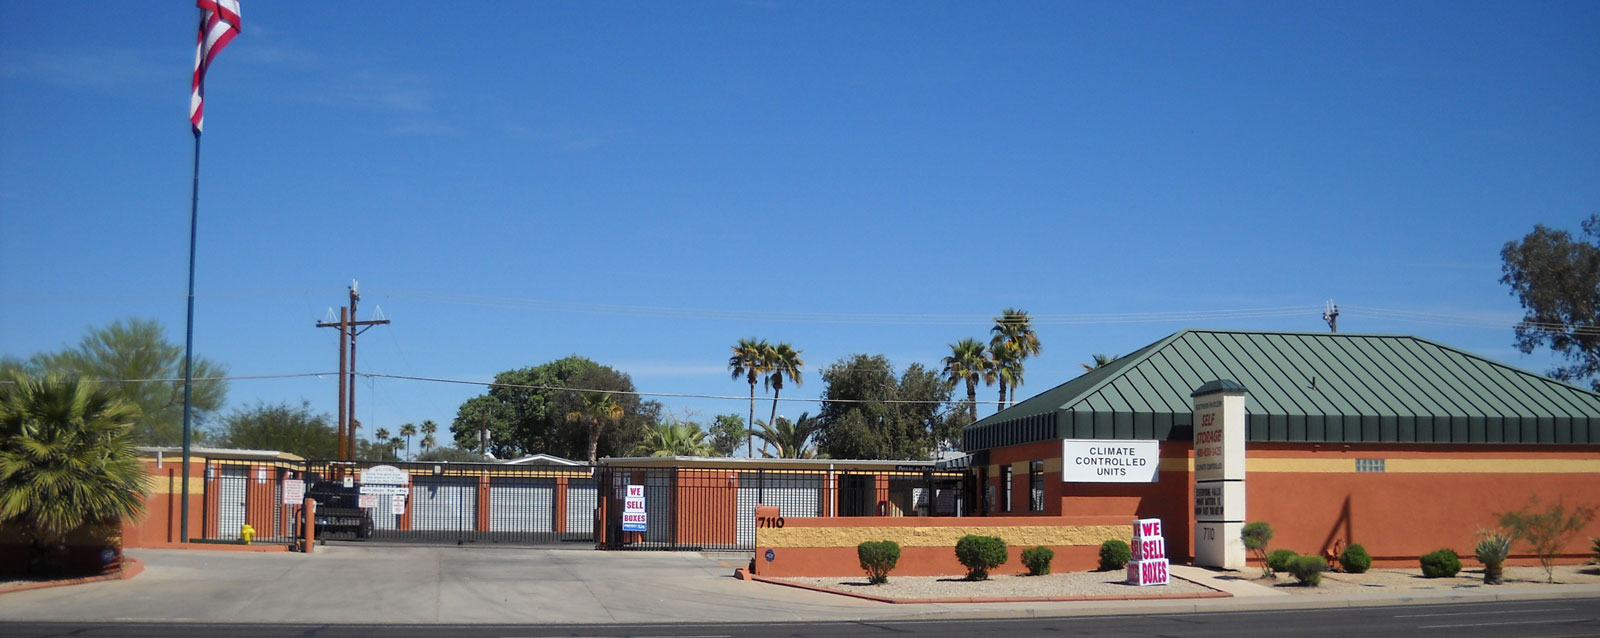 Exterior of Mesa self storage